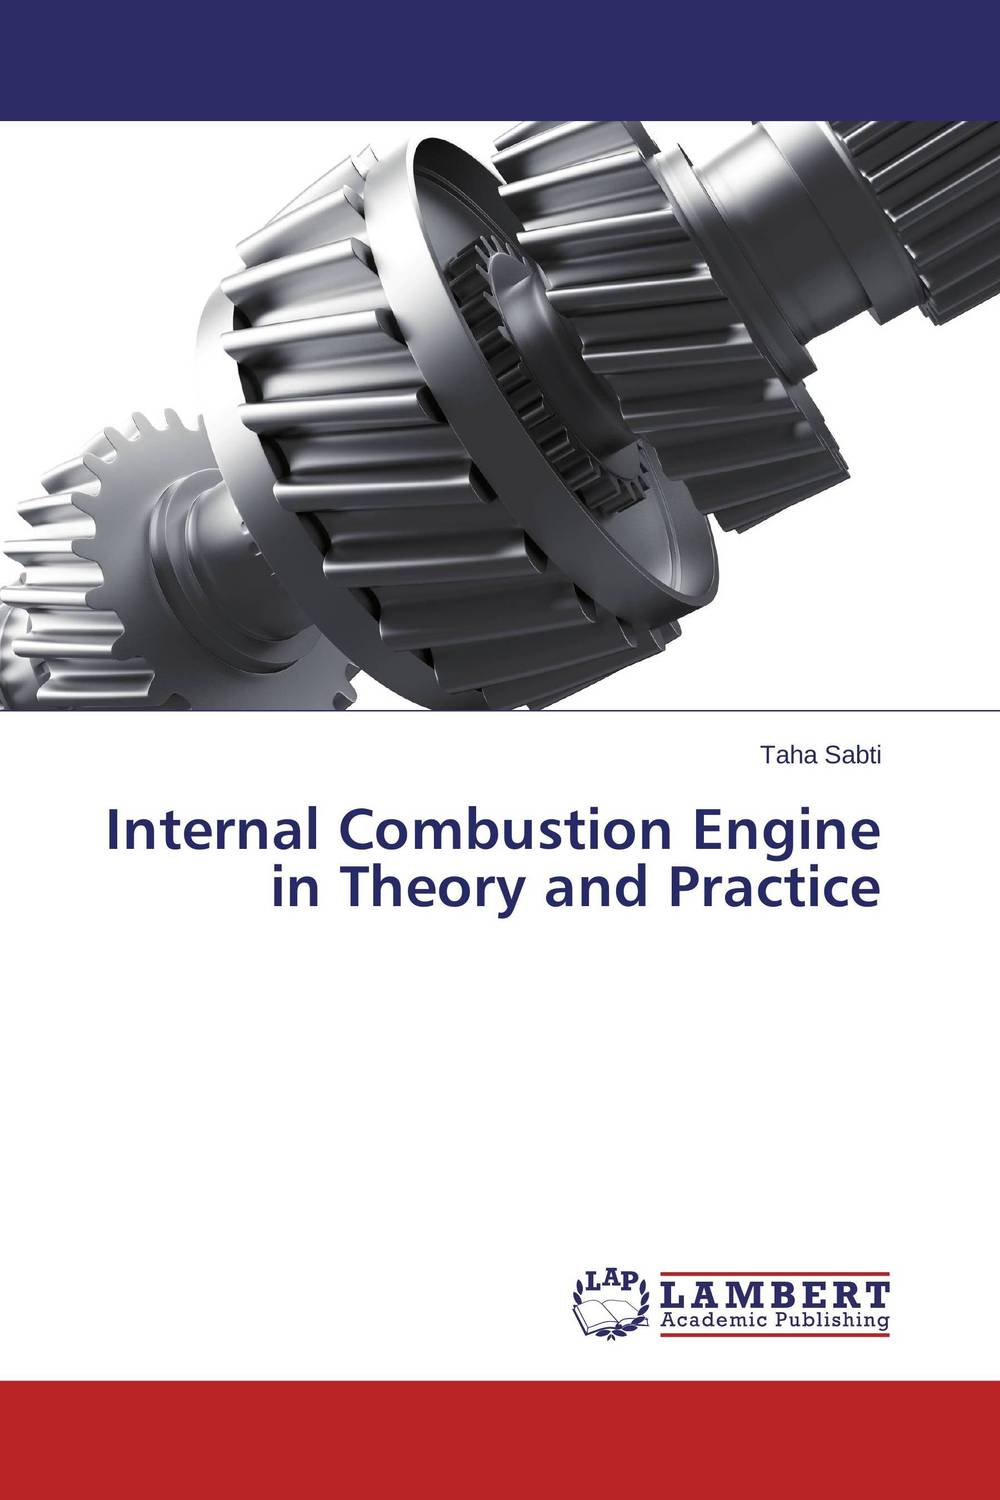 Internal Combustion Engine in Theory and Practice hyster class 5 internal combustion engine trucks pneumatic tire repair manuals 2013 html pdf